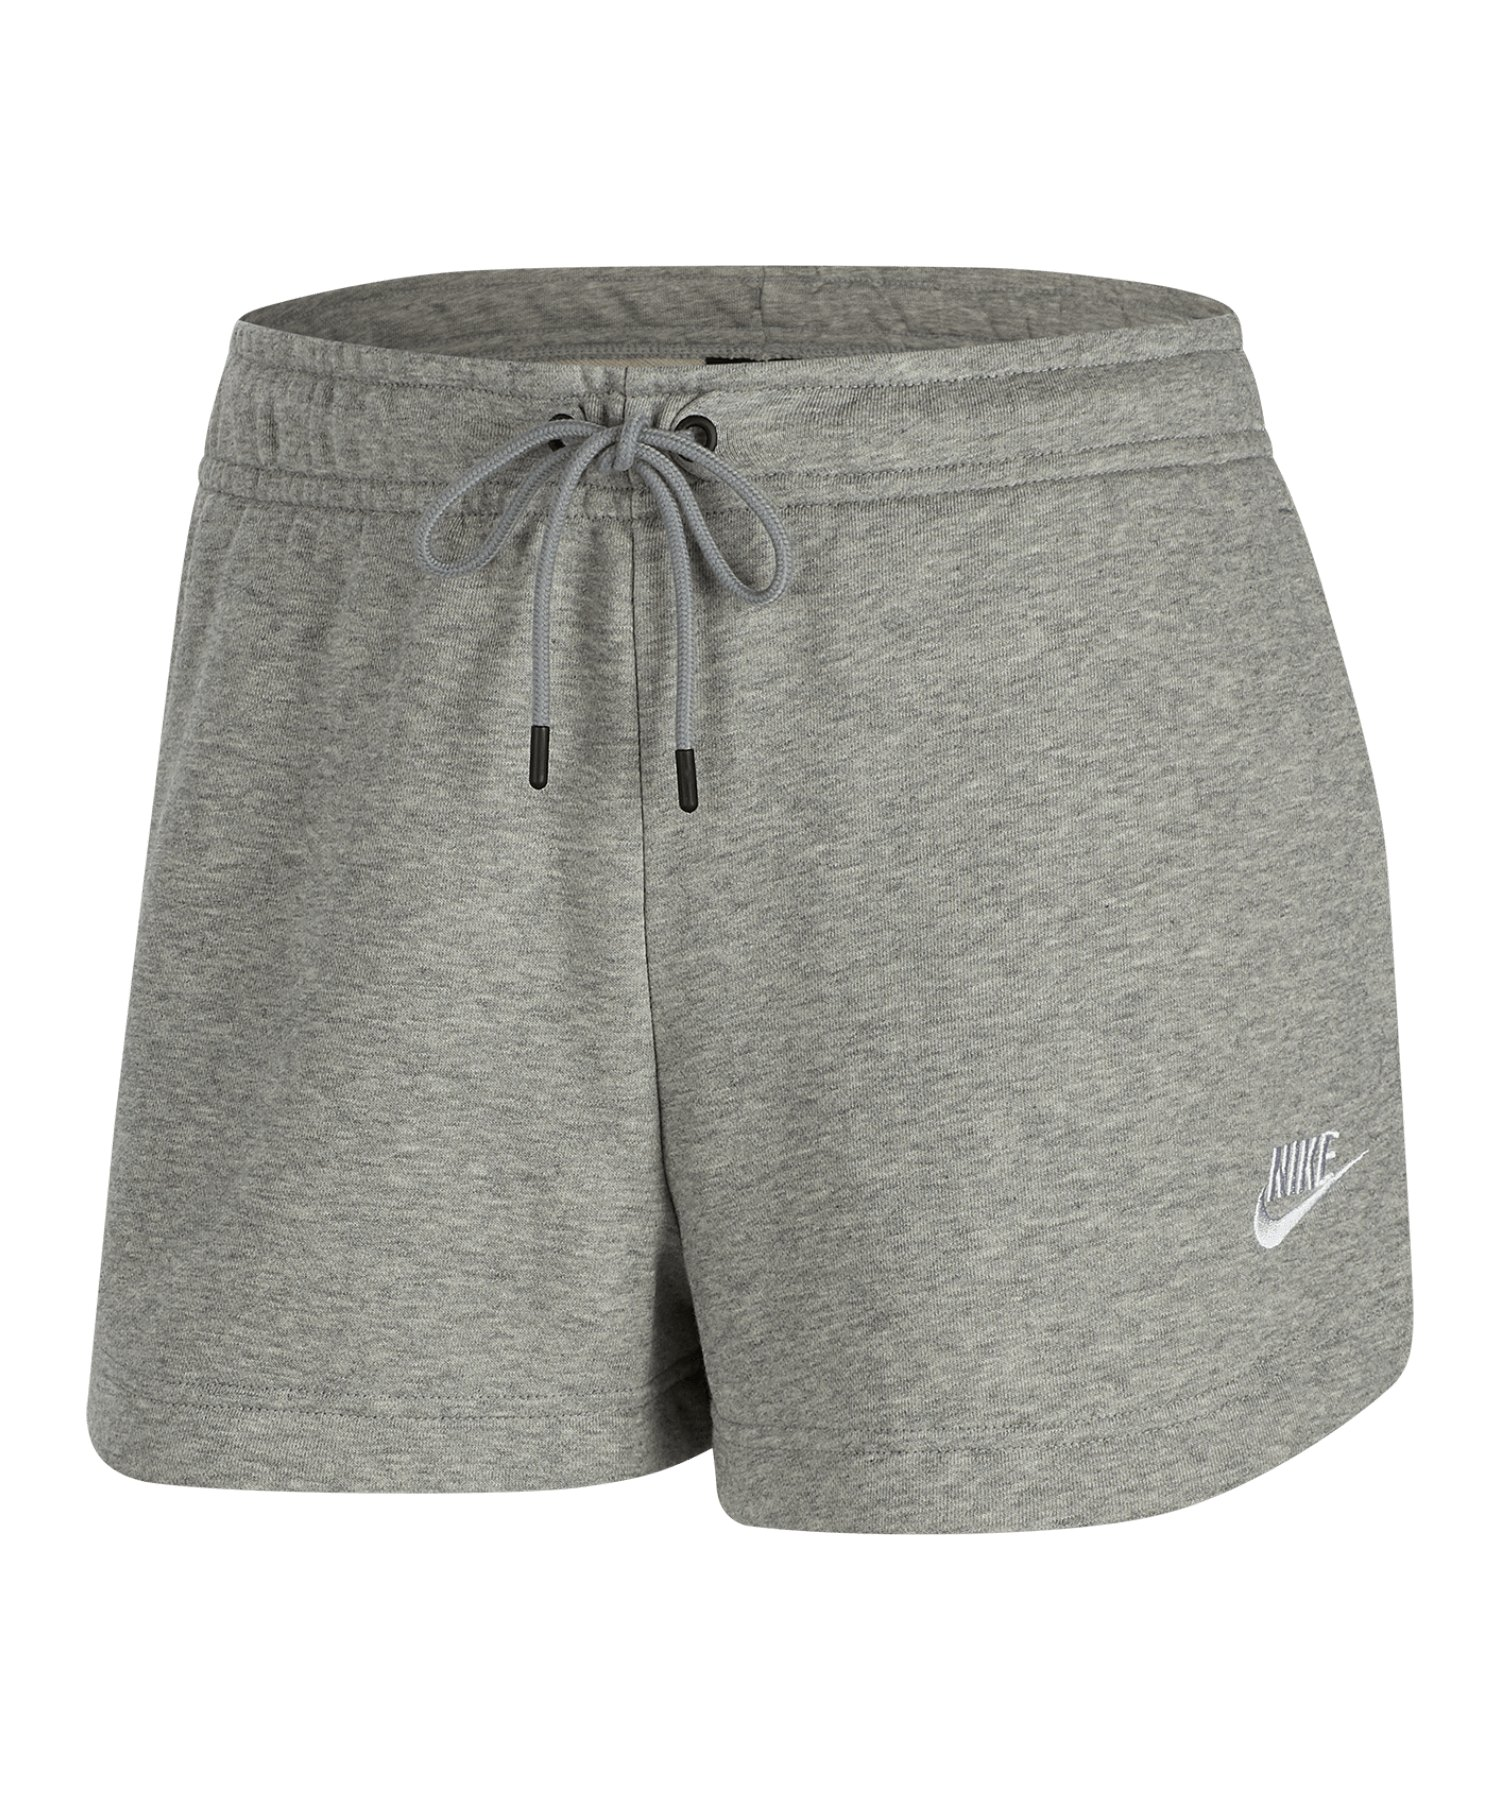 Nike Essential Short Damen Grau F063 - grau